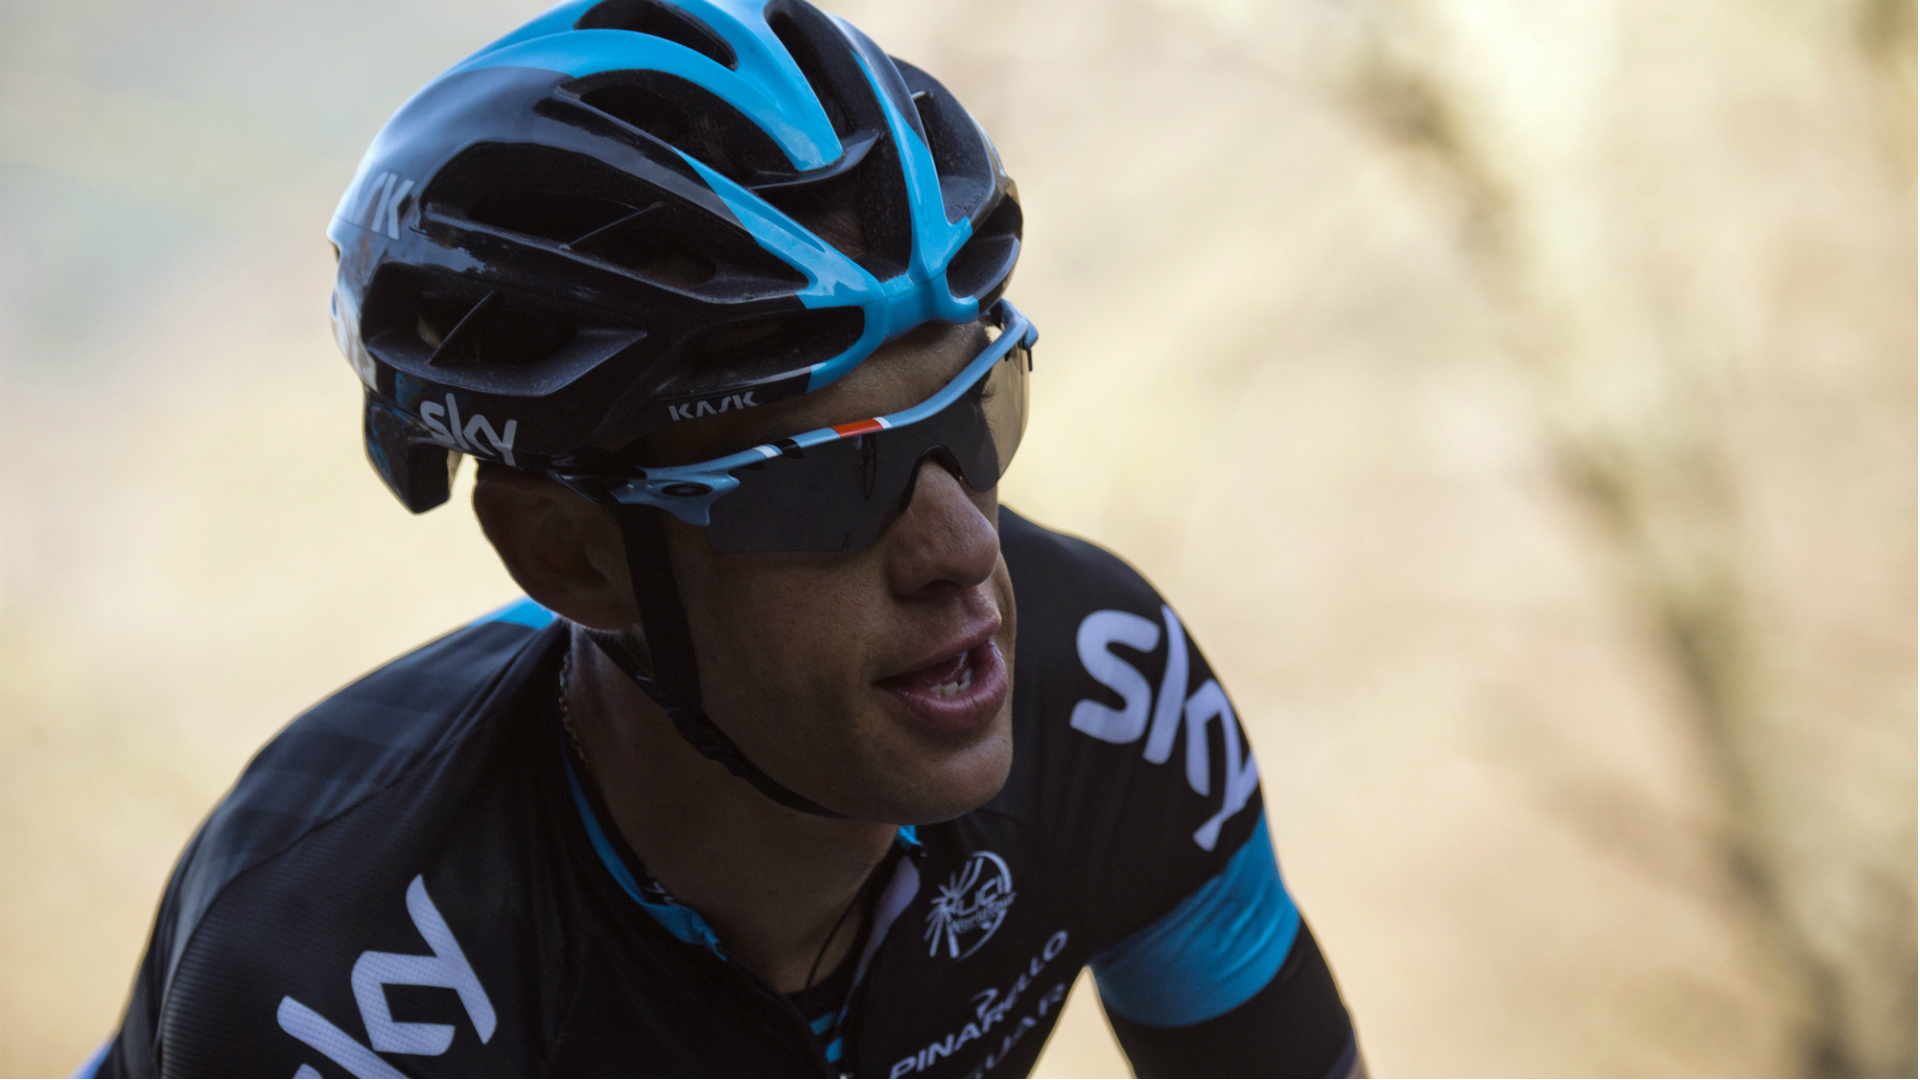 Other team sky cyclist richie porte predicts giro d for Richie porte latest news